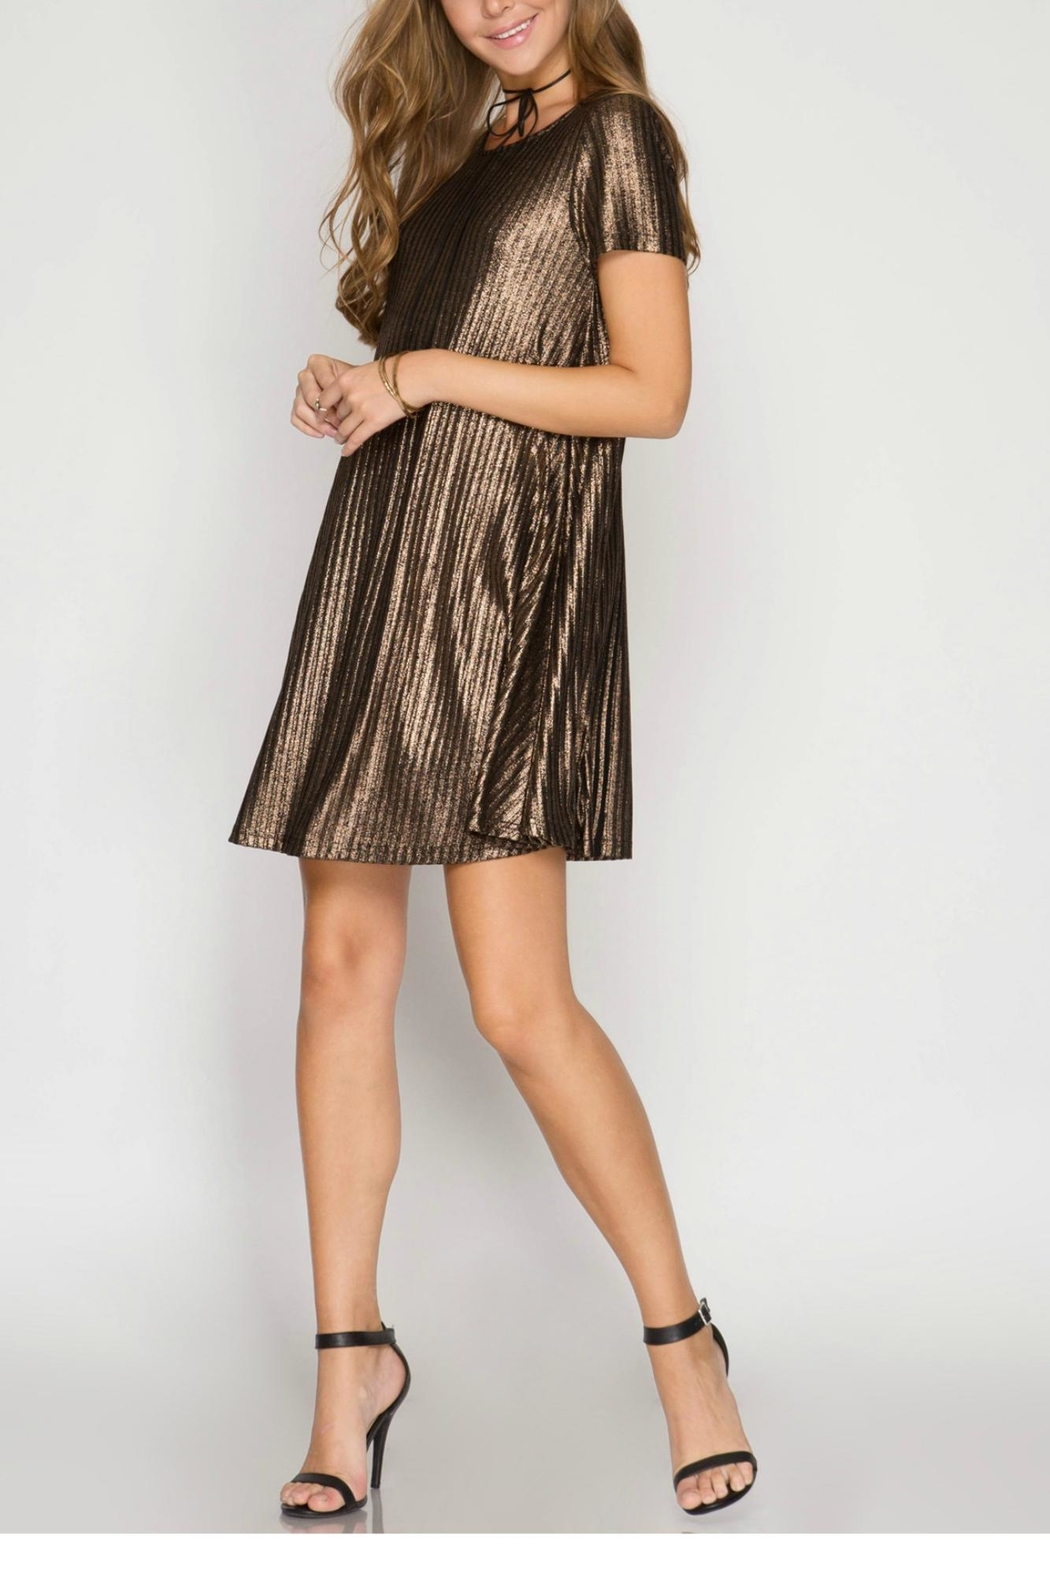 She + Sky Ribbed Metallic Dress - Front Cropped Image